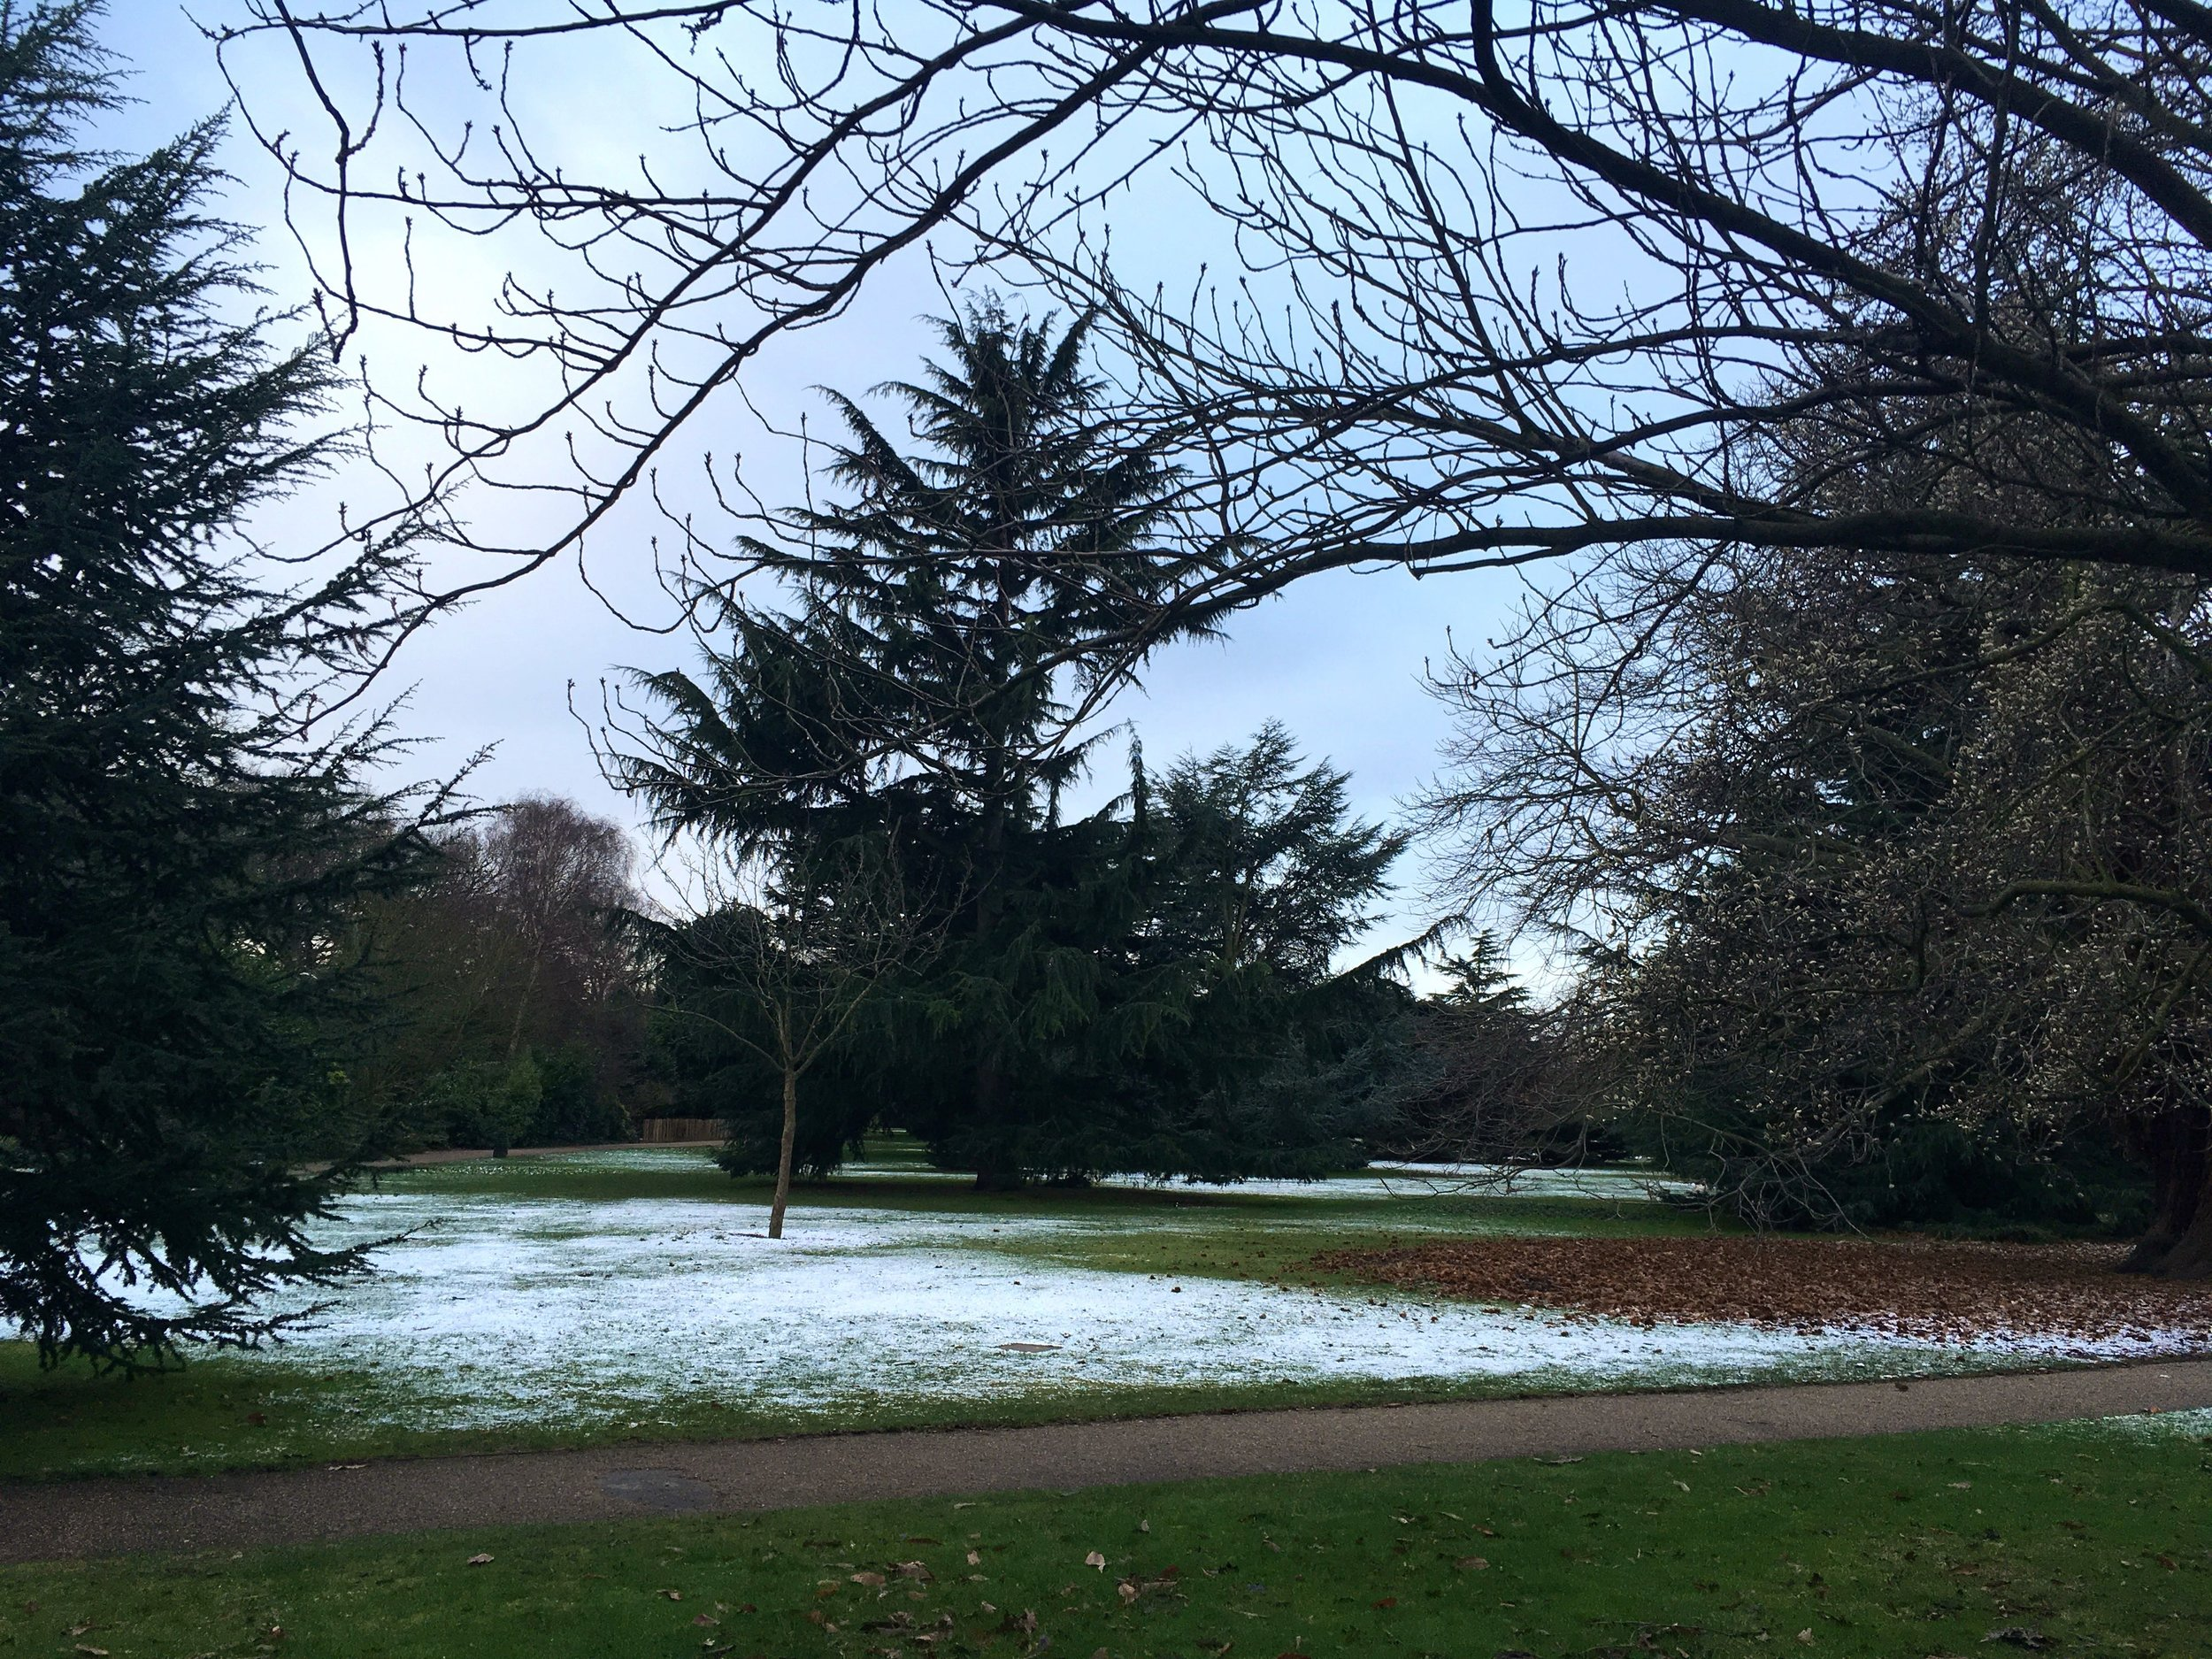 The morning after the snow in Greenwich Park